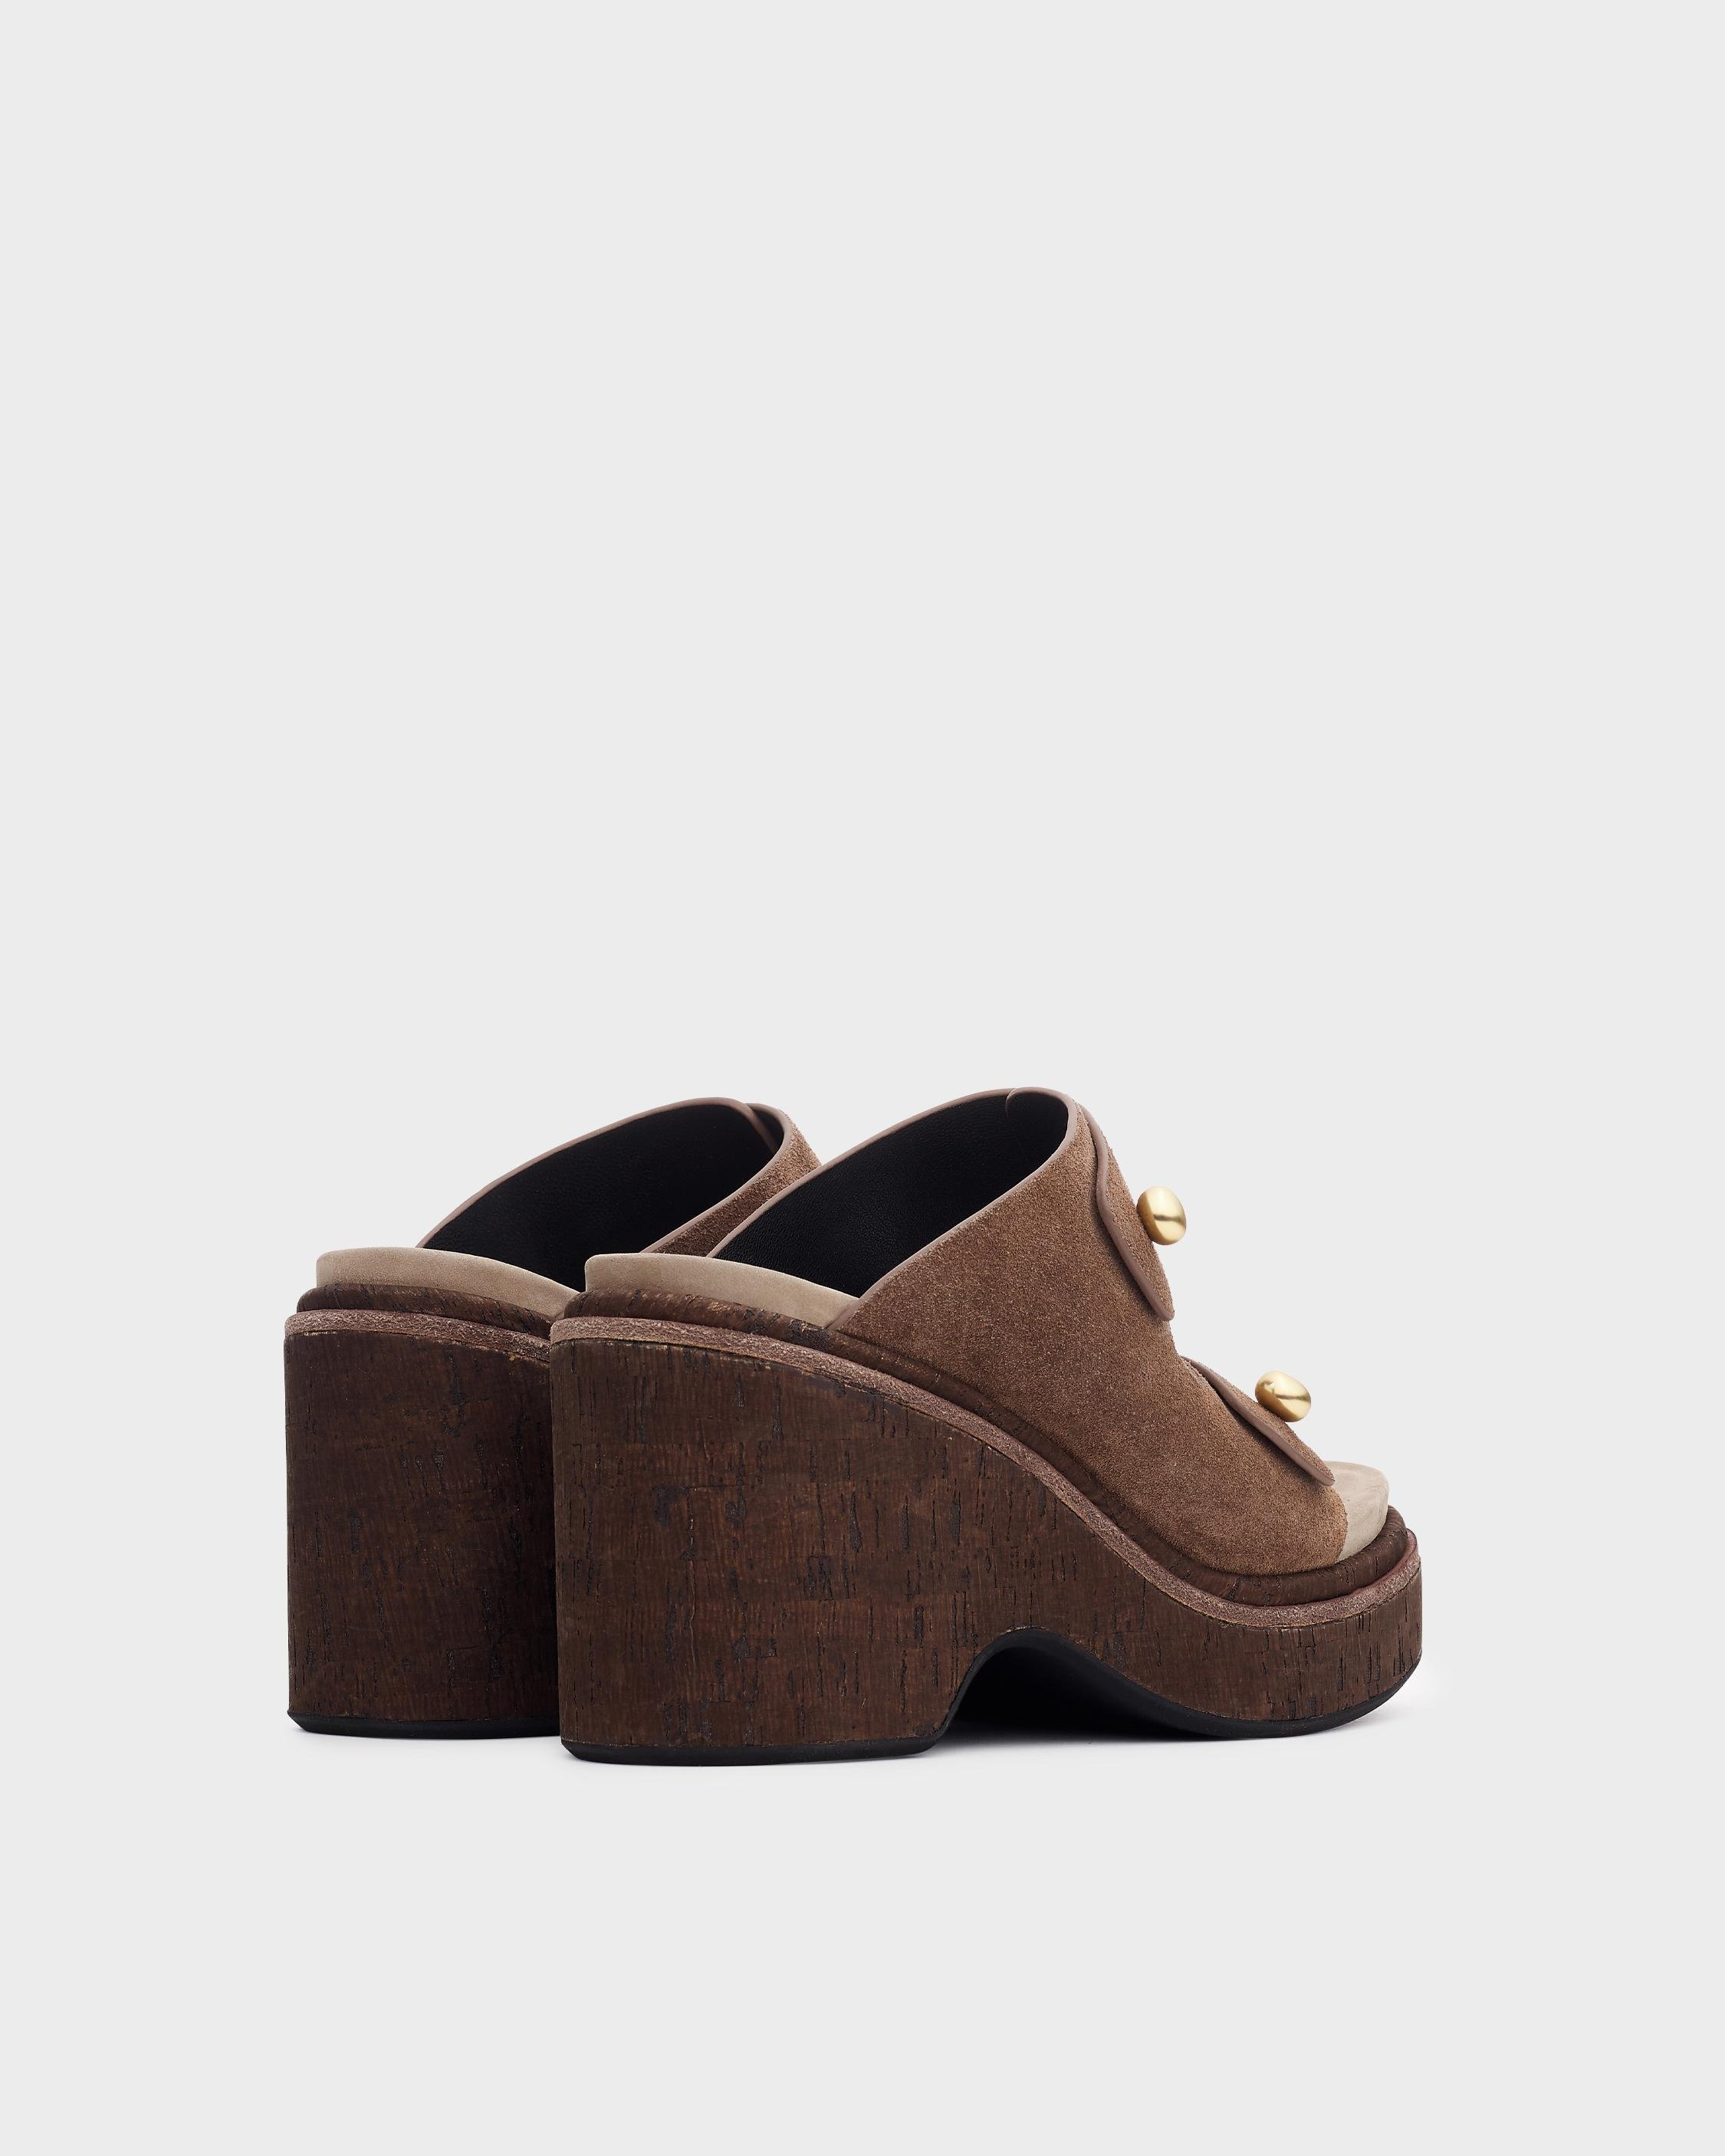 Sommer wedge - suede 1